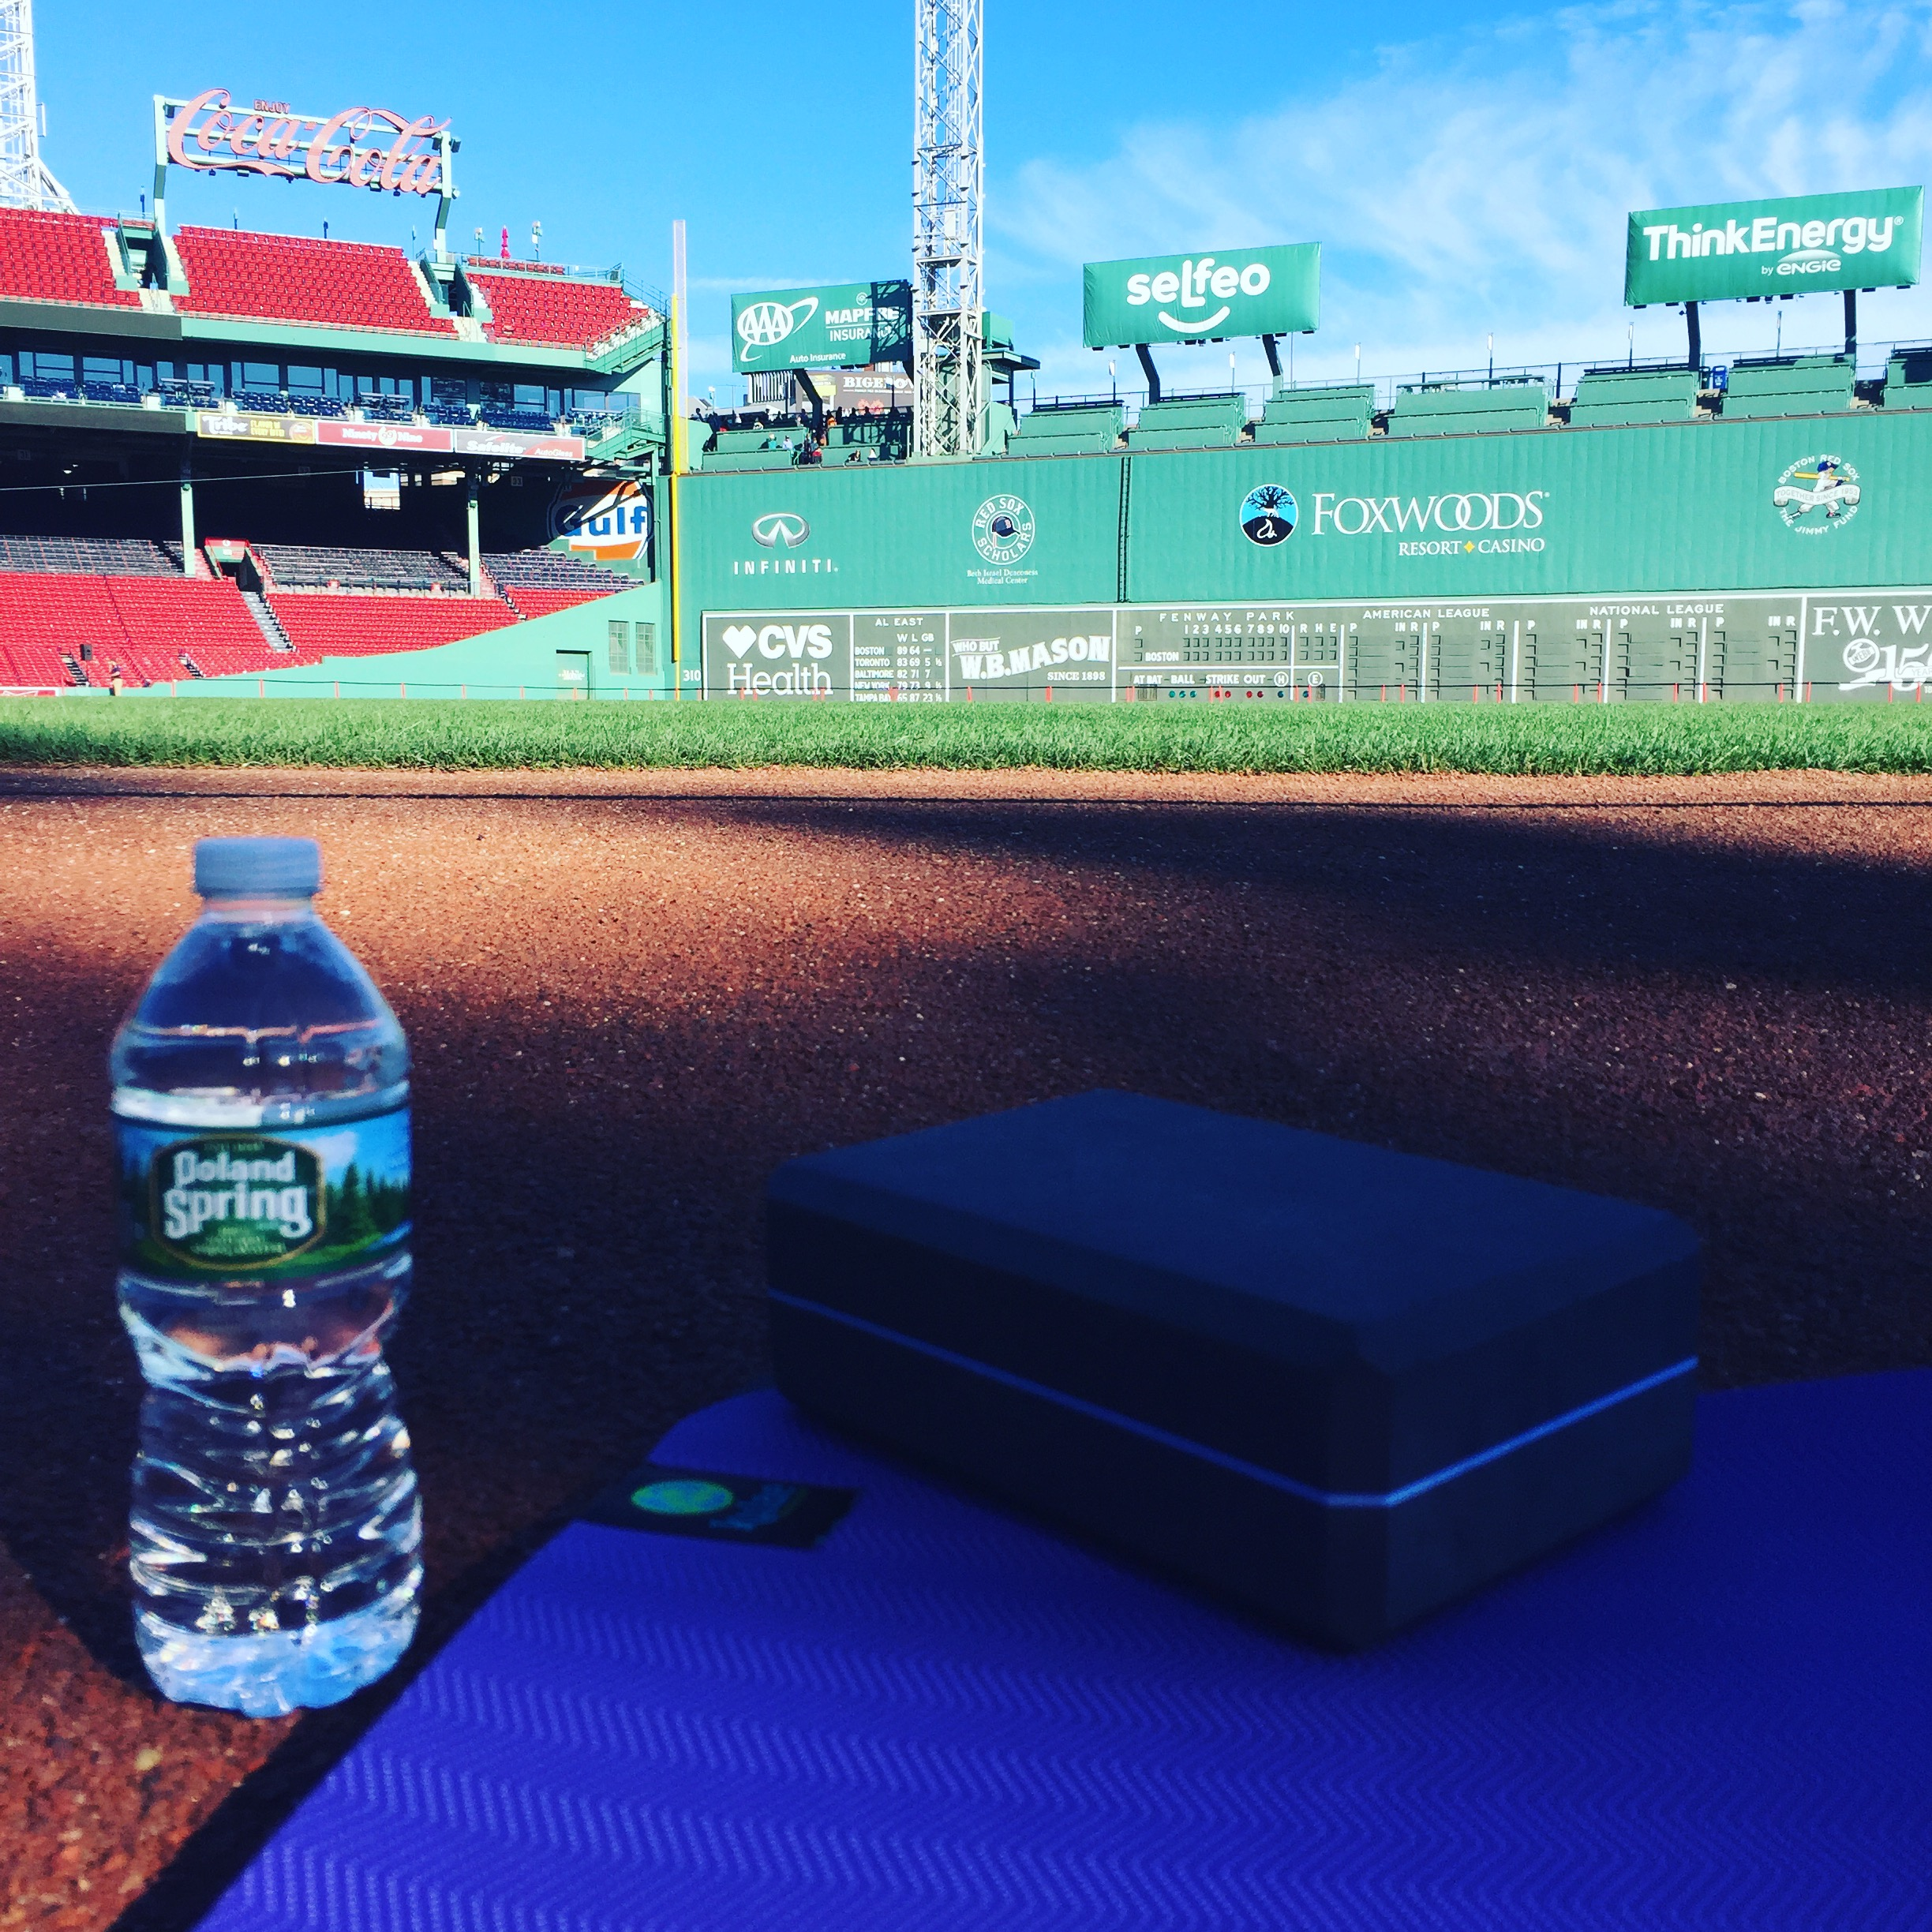 Copy of Copy of Fenway Yoga